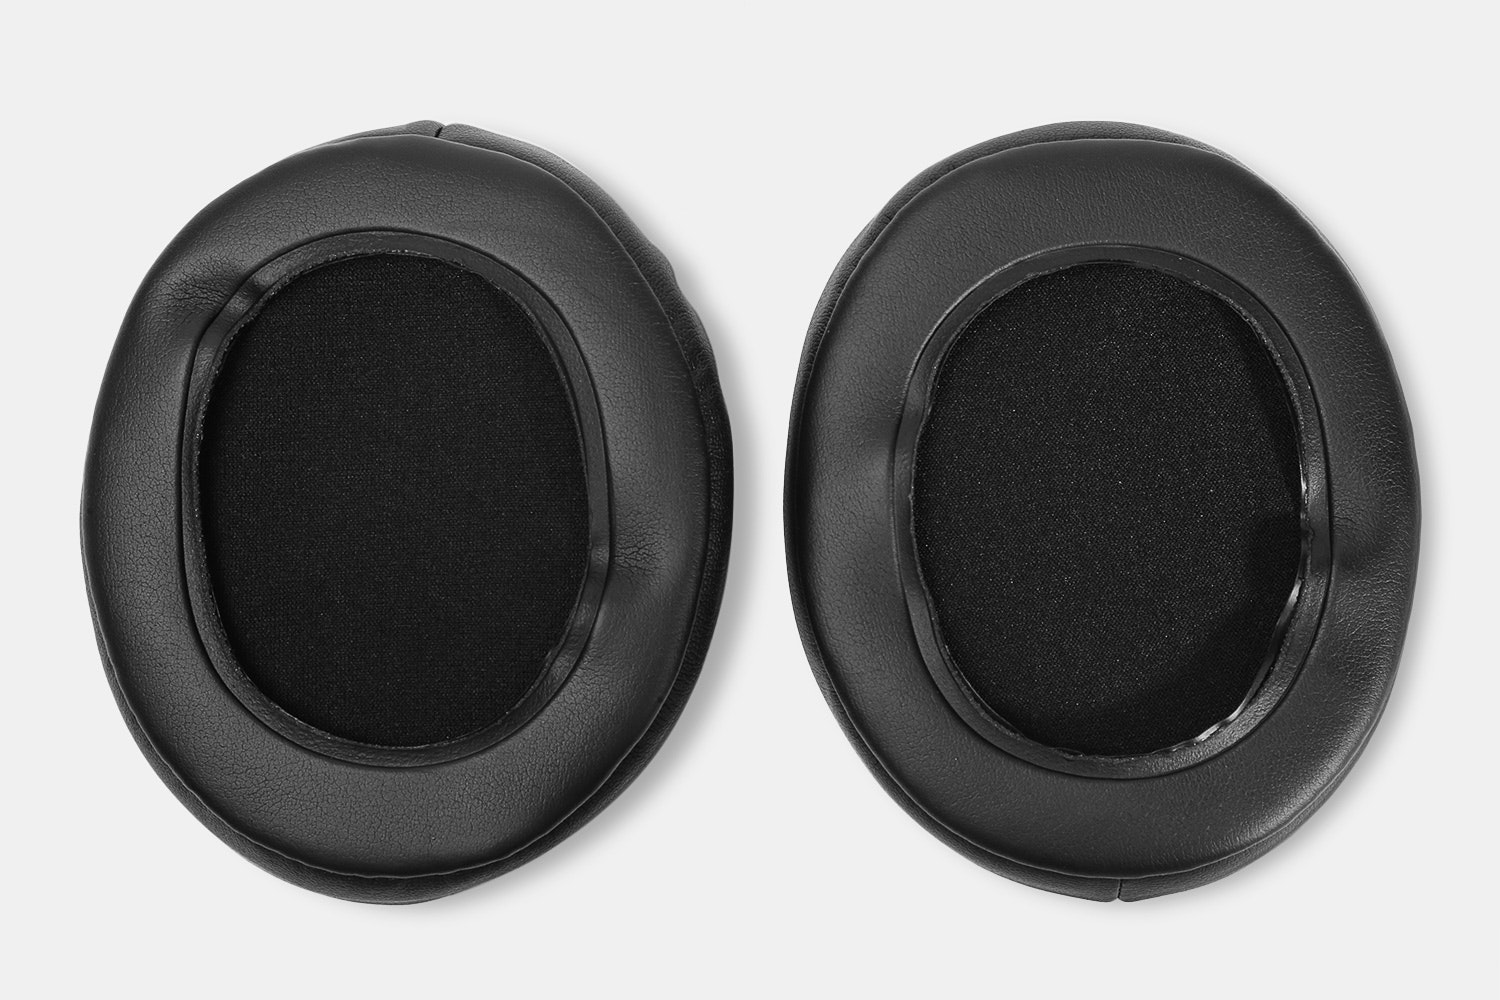 Brainwavz Memory Foam Ear Pads